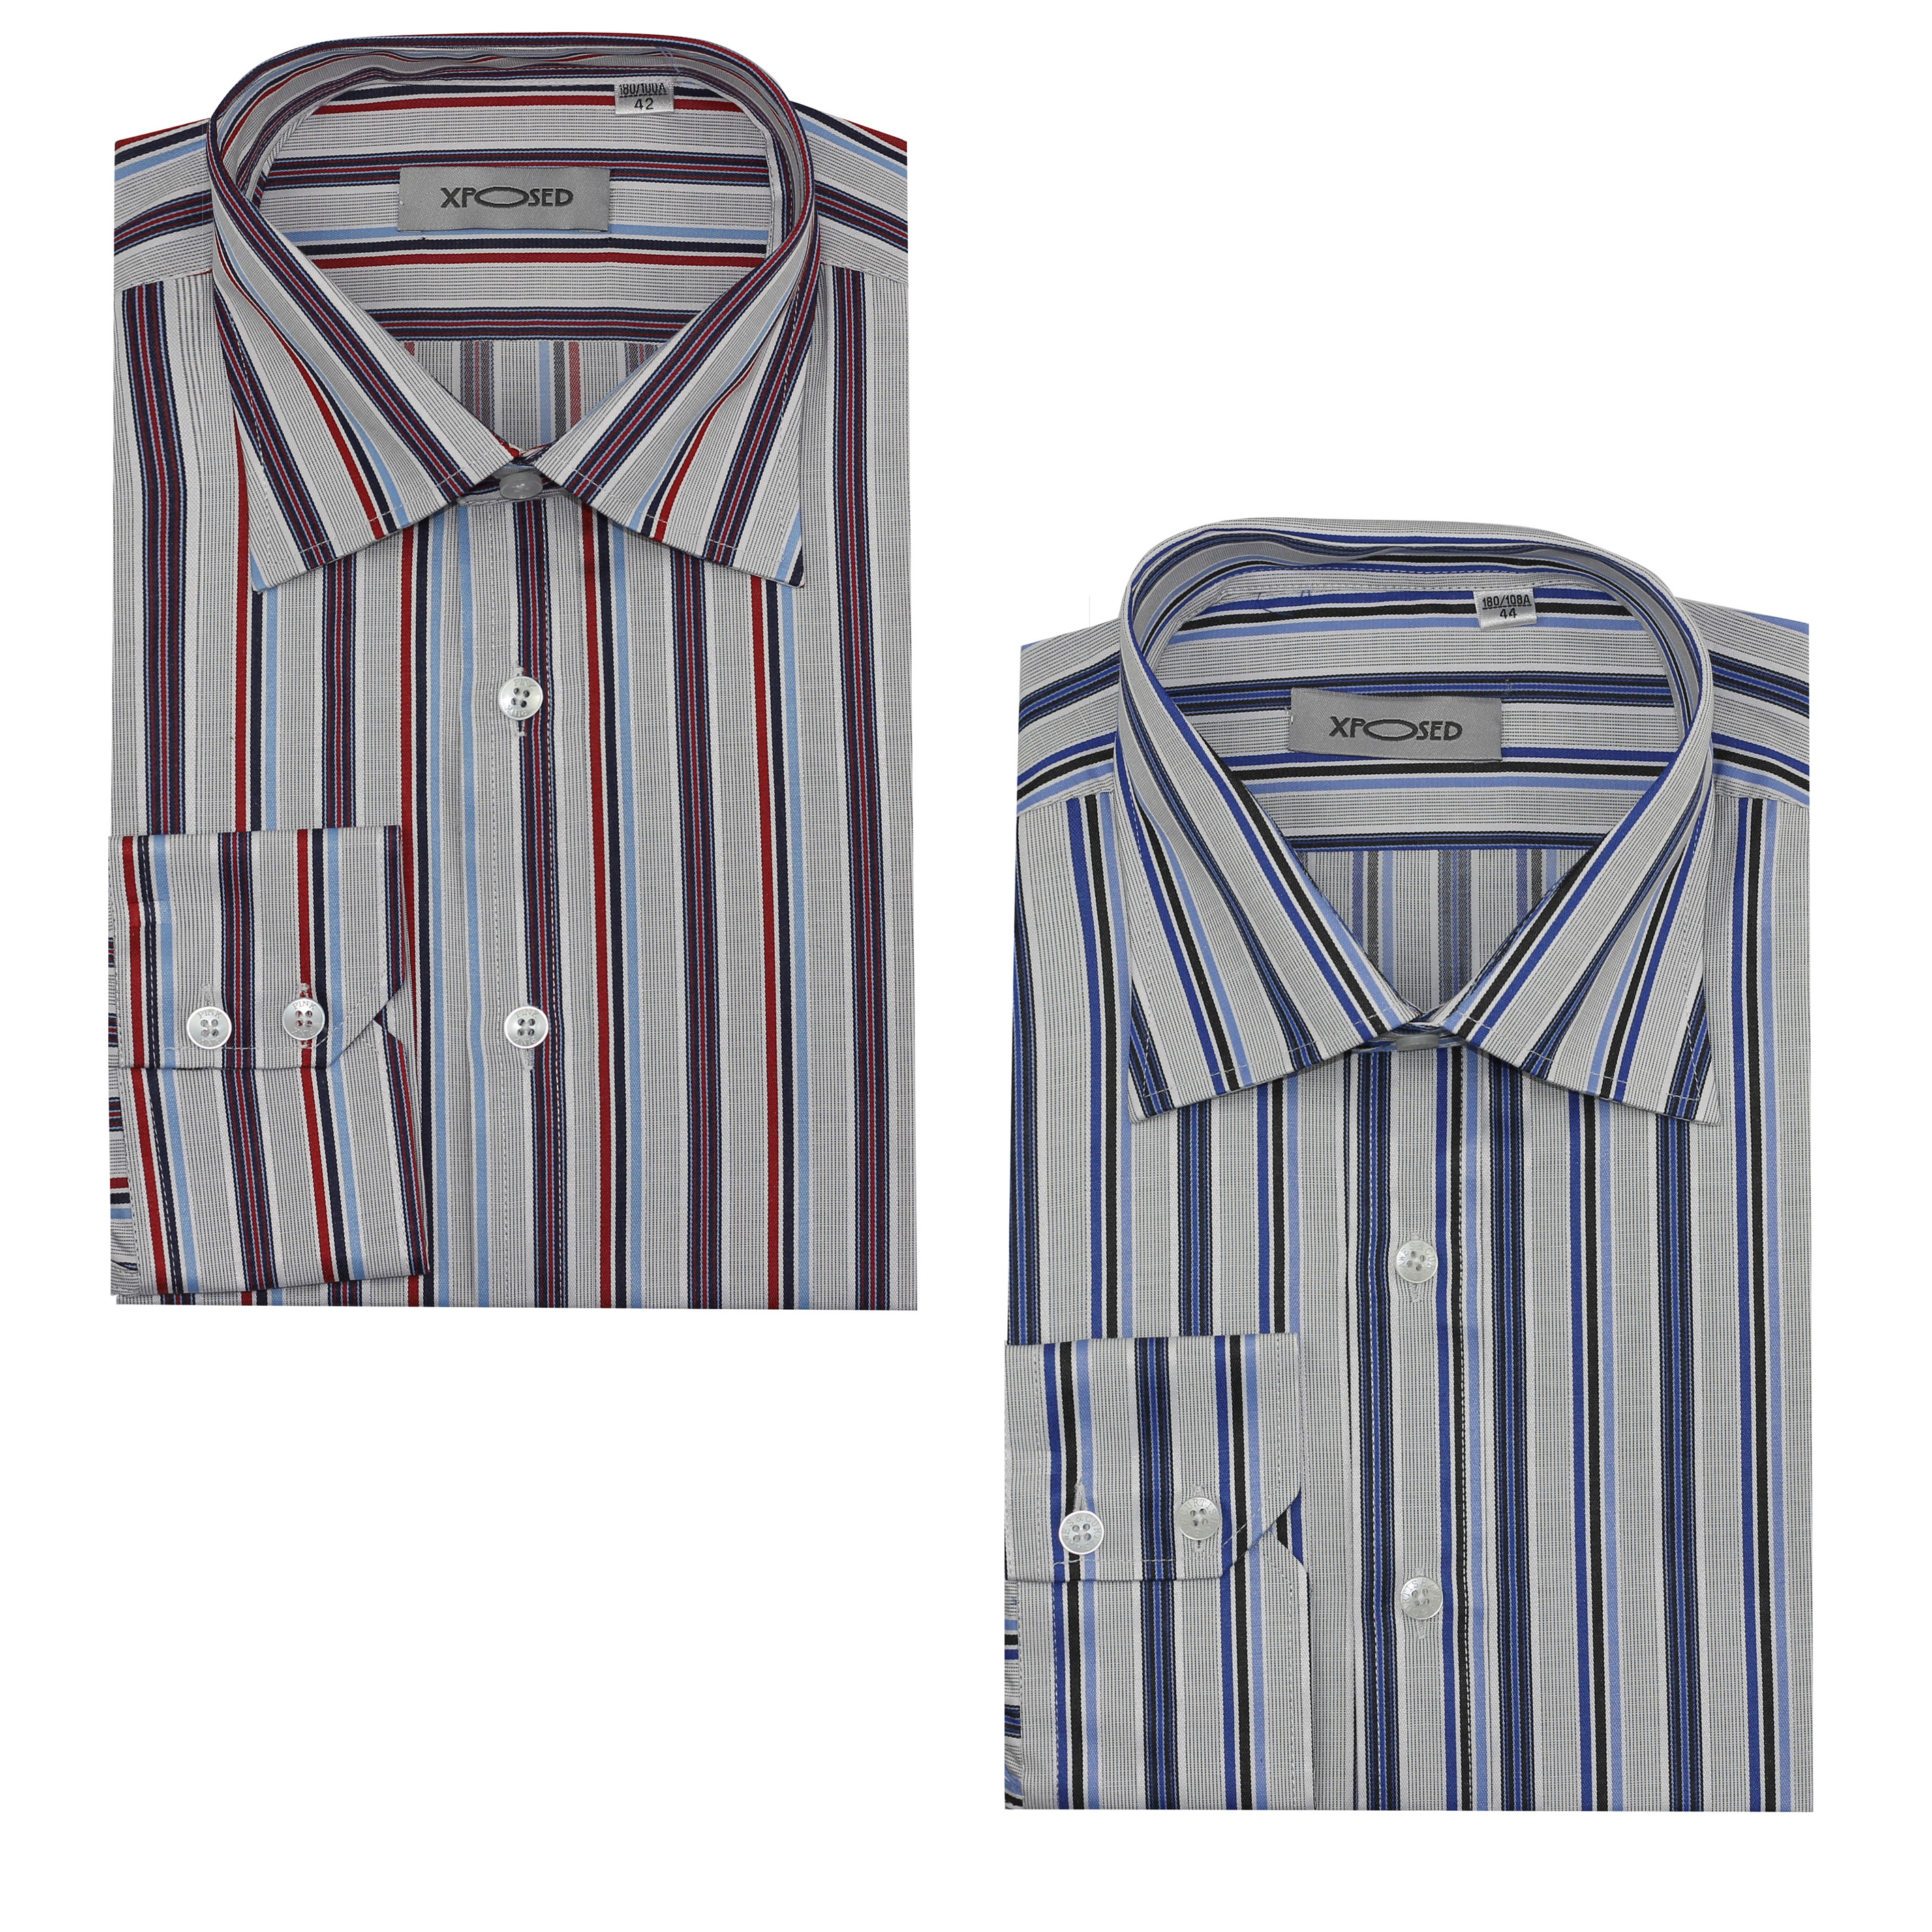 8b0e472fd94 Details about New Mens Smart Formal Office Work Long Sleeve Shirt Blue &  Red Stripe on White